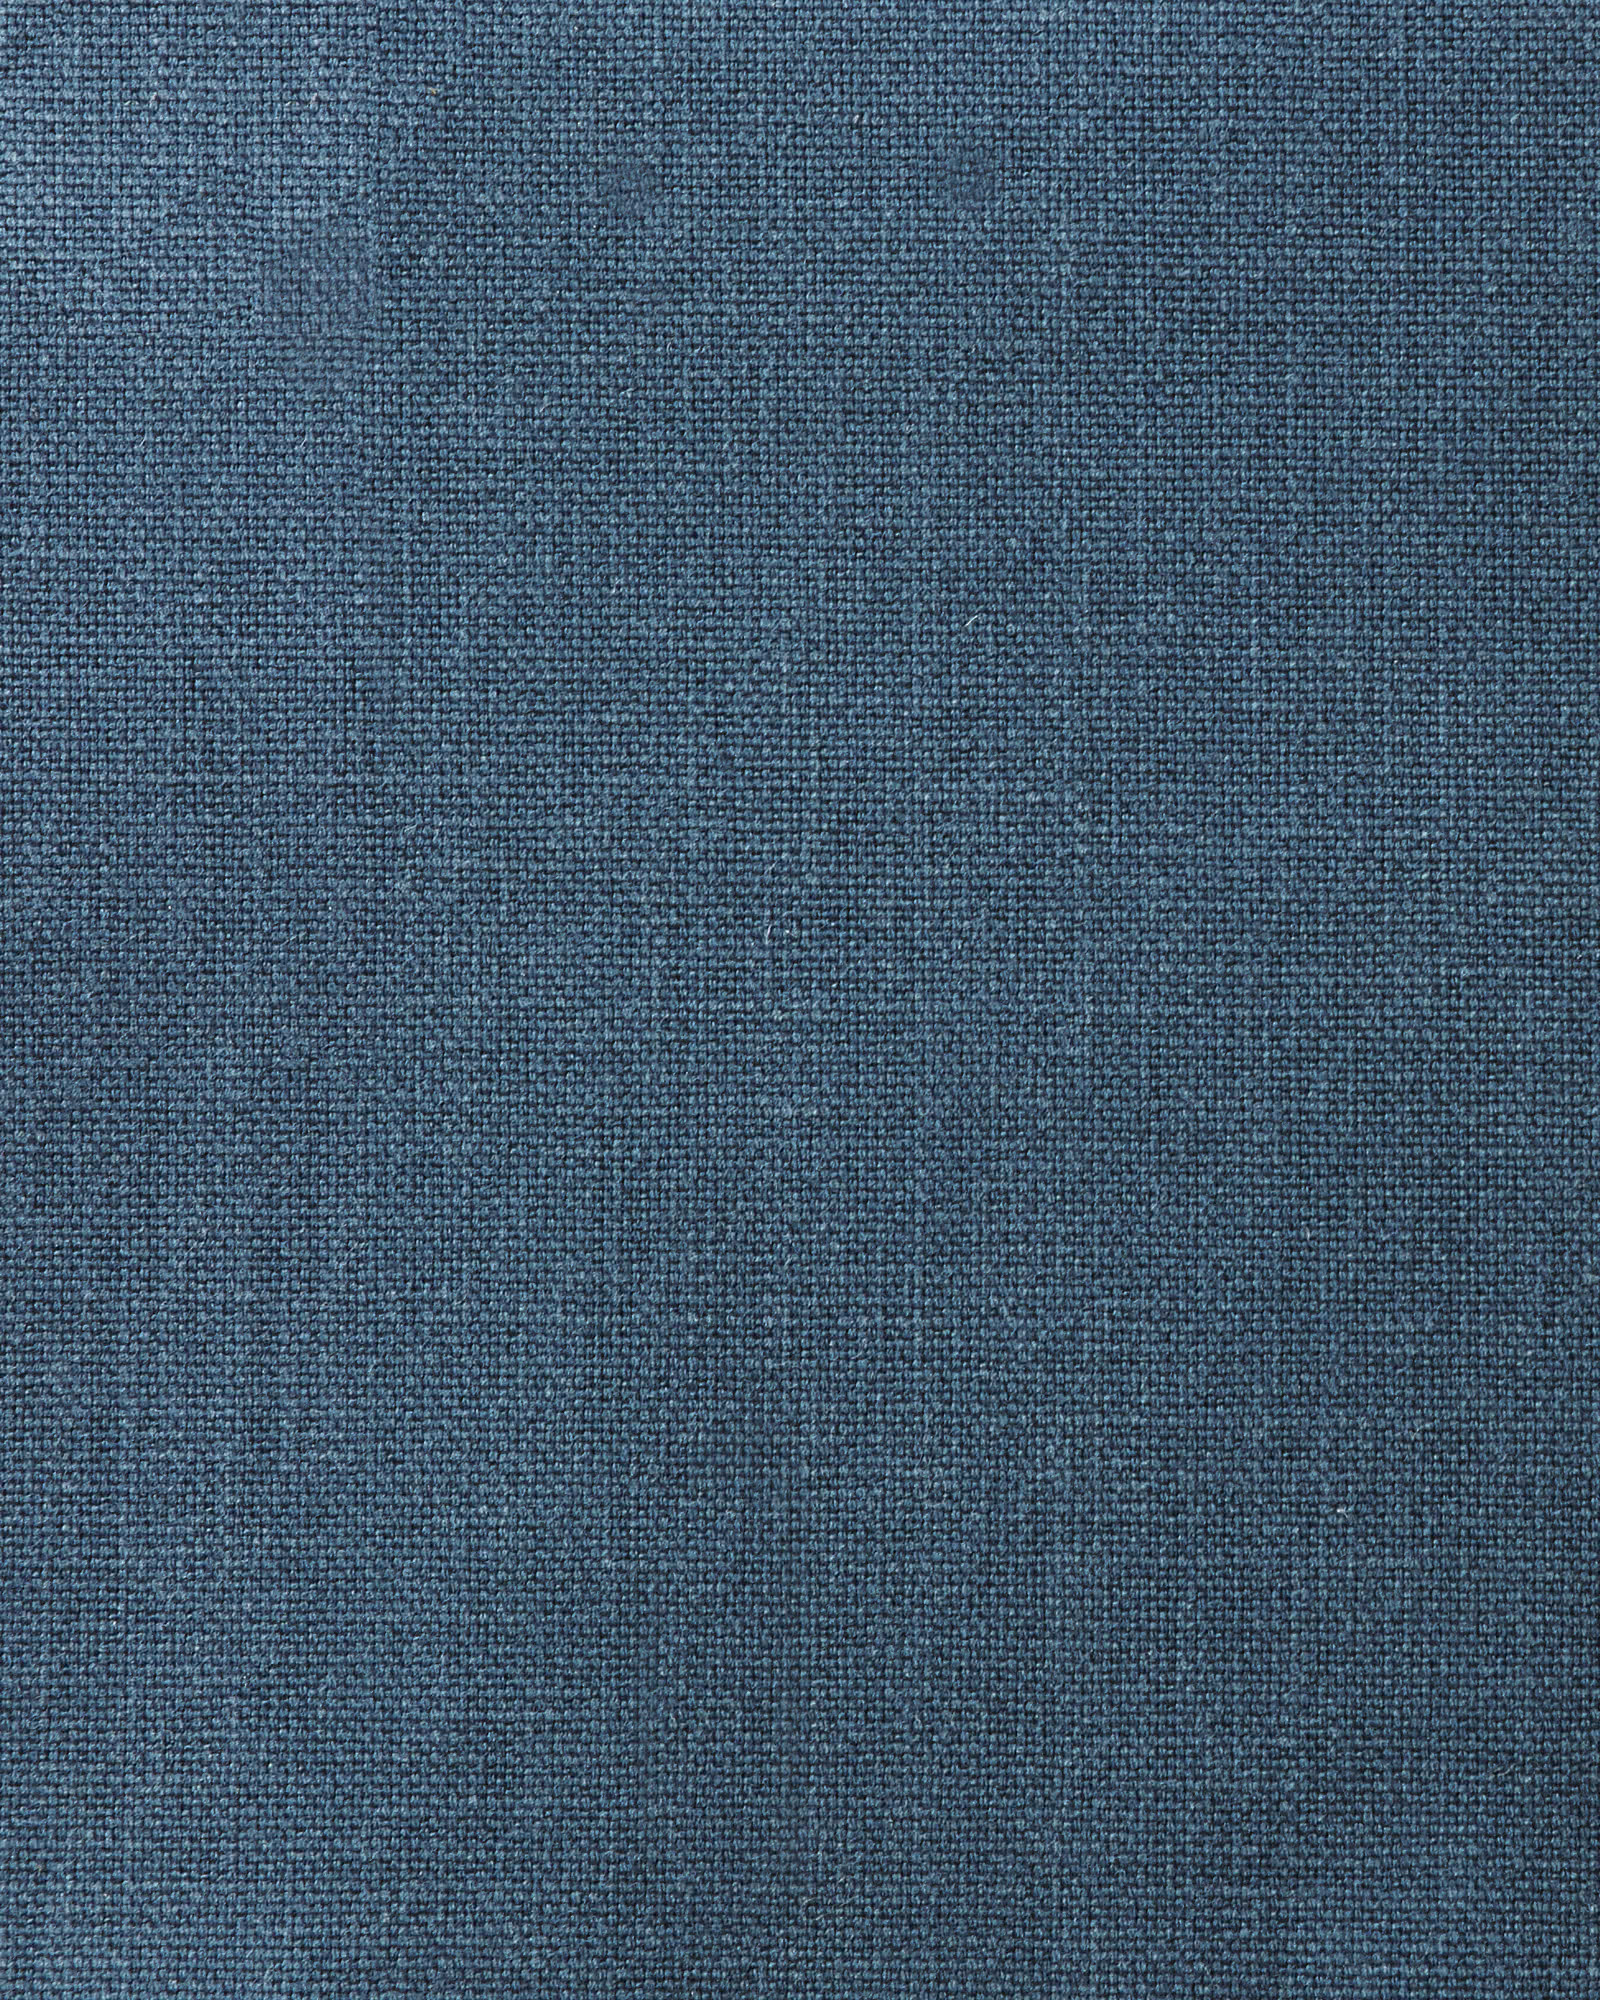 Brushed Cotton Canvas - Aegean,